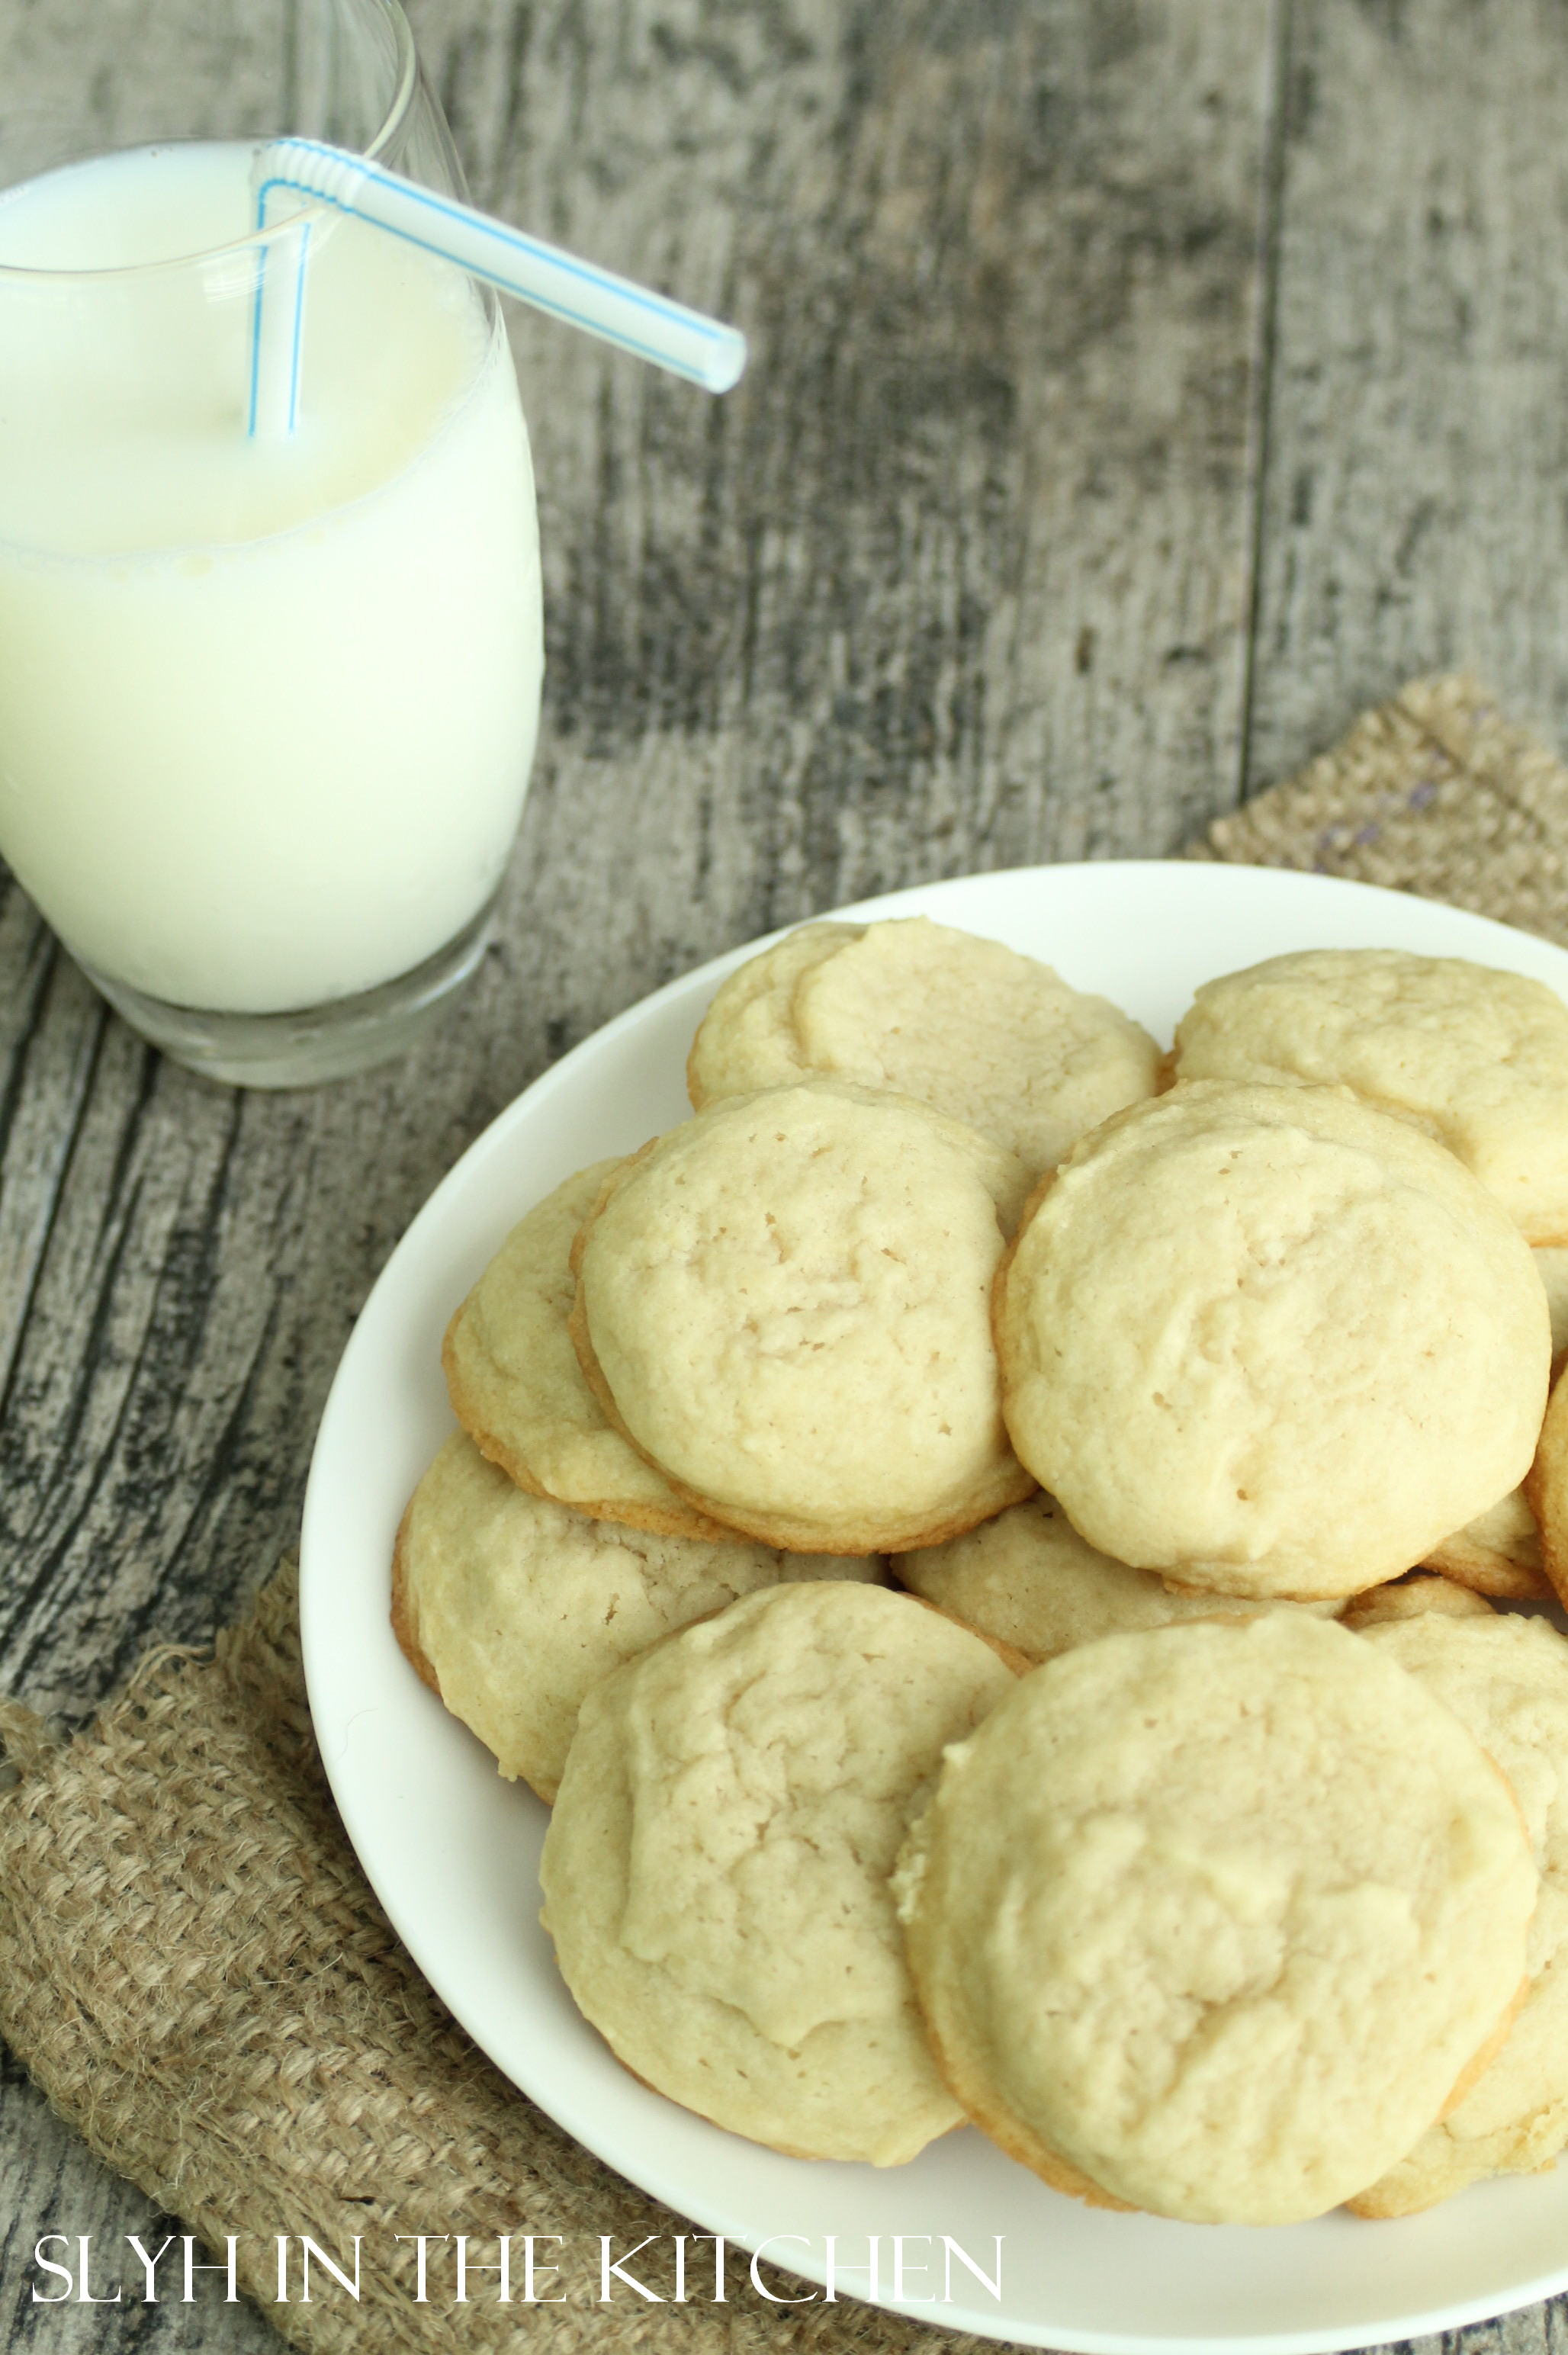 How to make sugar cookies from scratch without baking for Pizza in a mug without baking soda